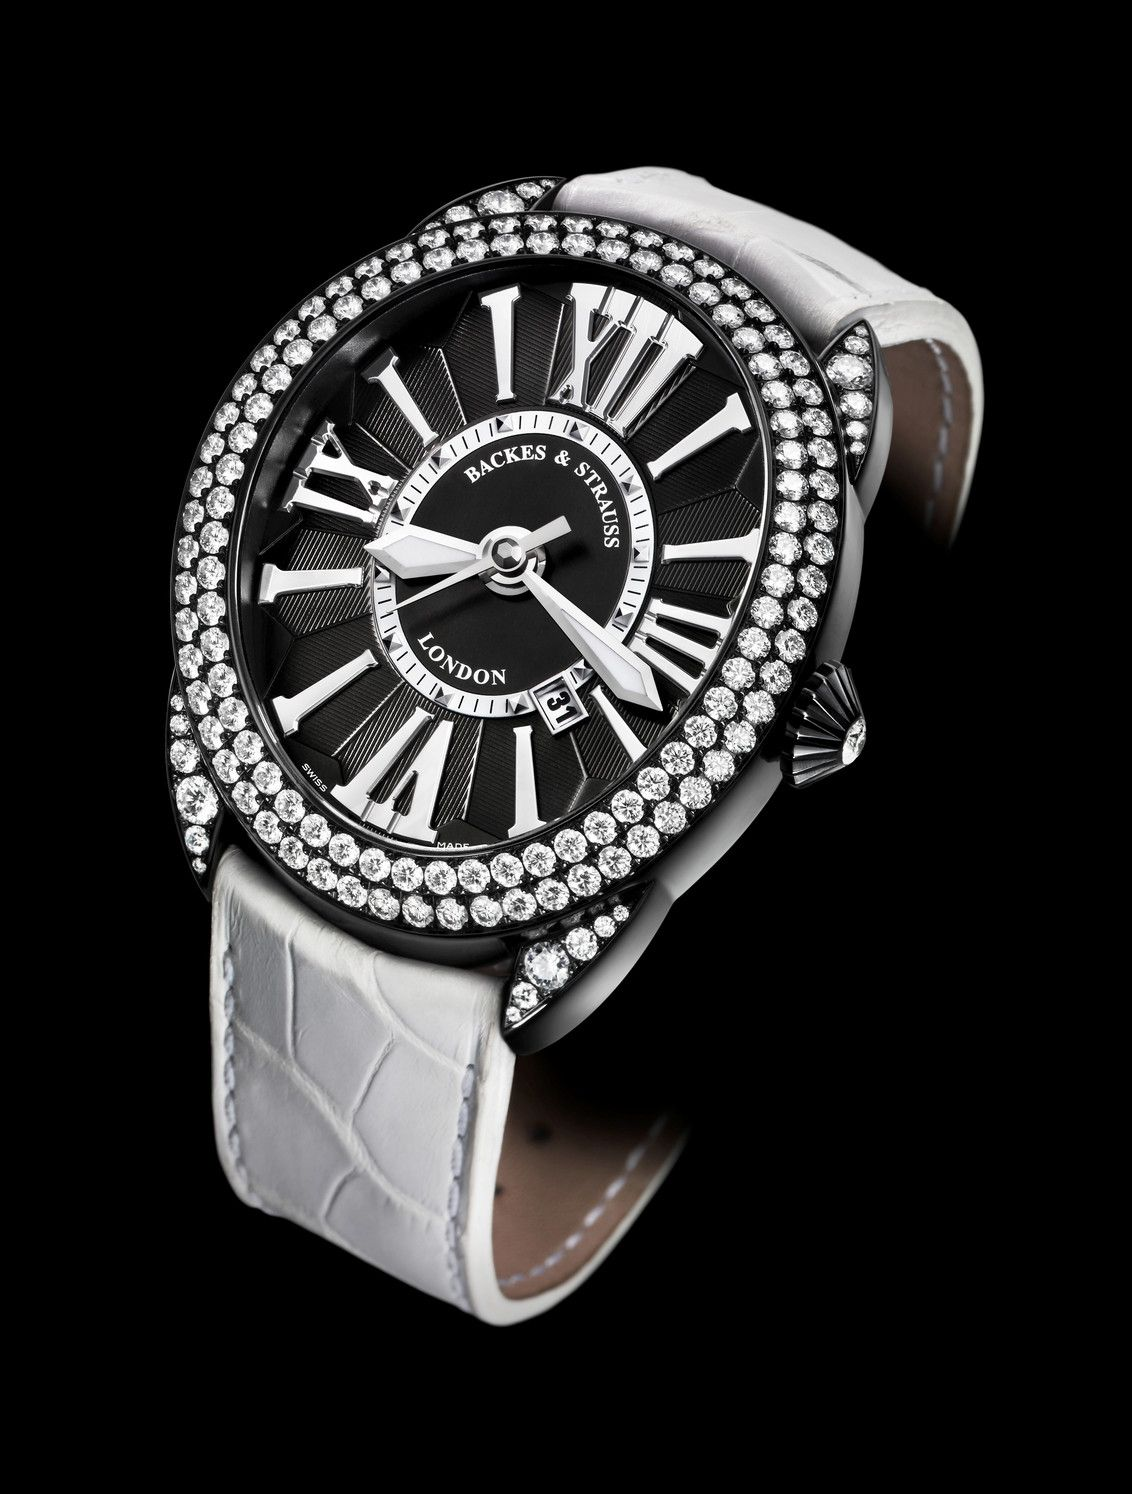 watches dext product st s ladies strauss stainless steel details diamond womens second regent and backes blr women